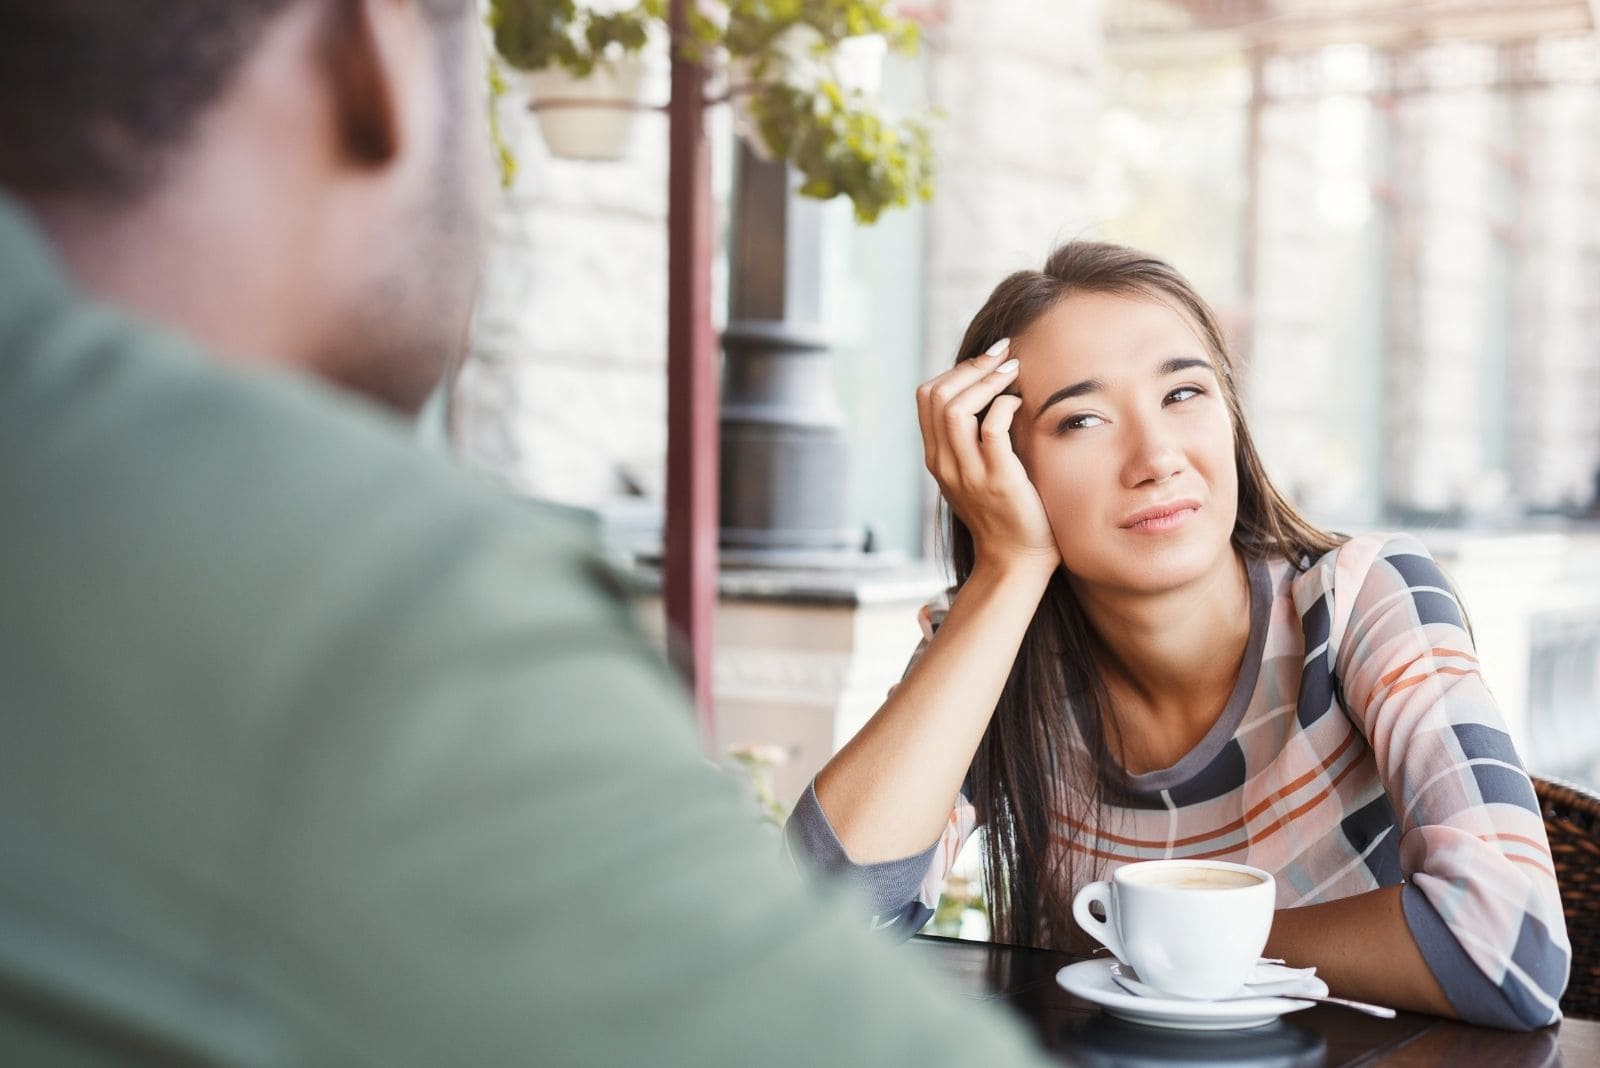 bored woman looking at the man with uninteresting look on her face in date at a cafe